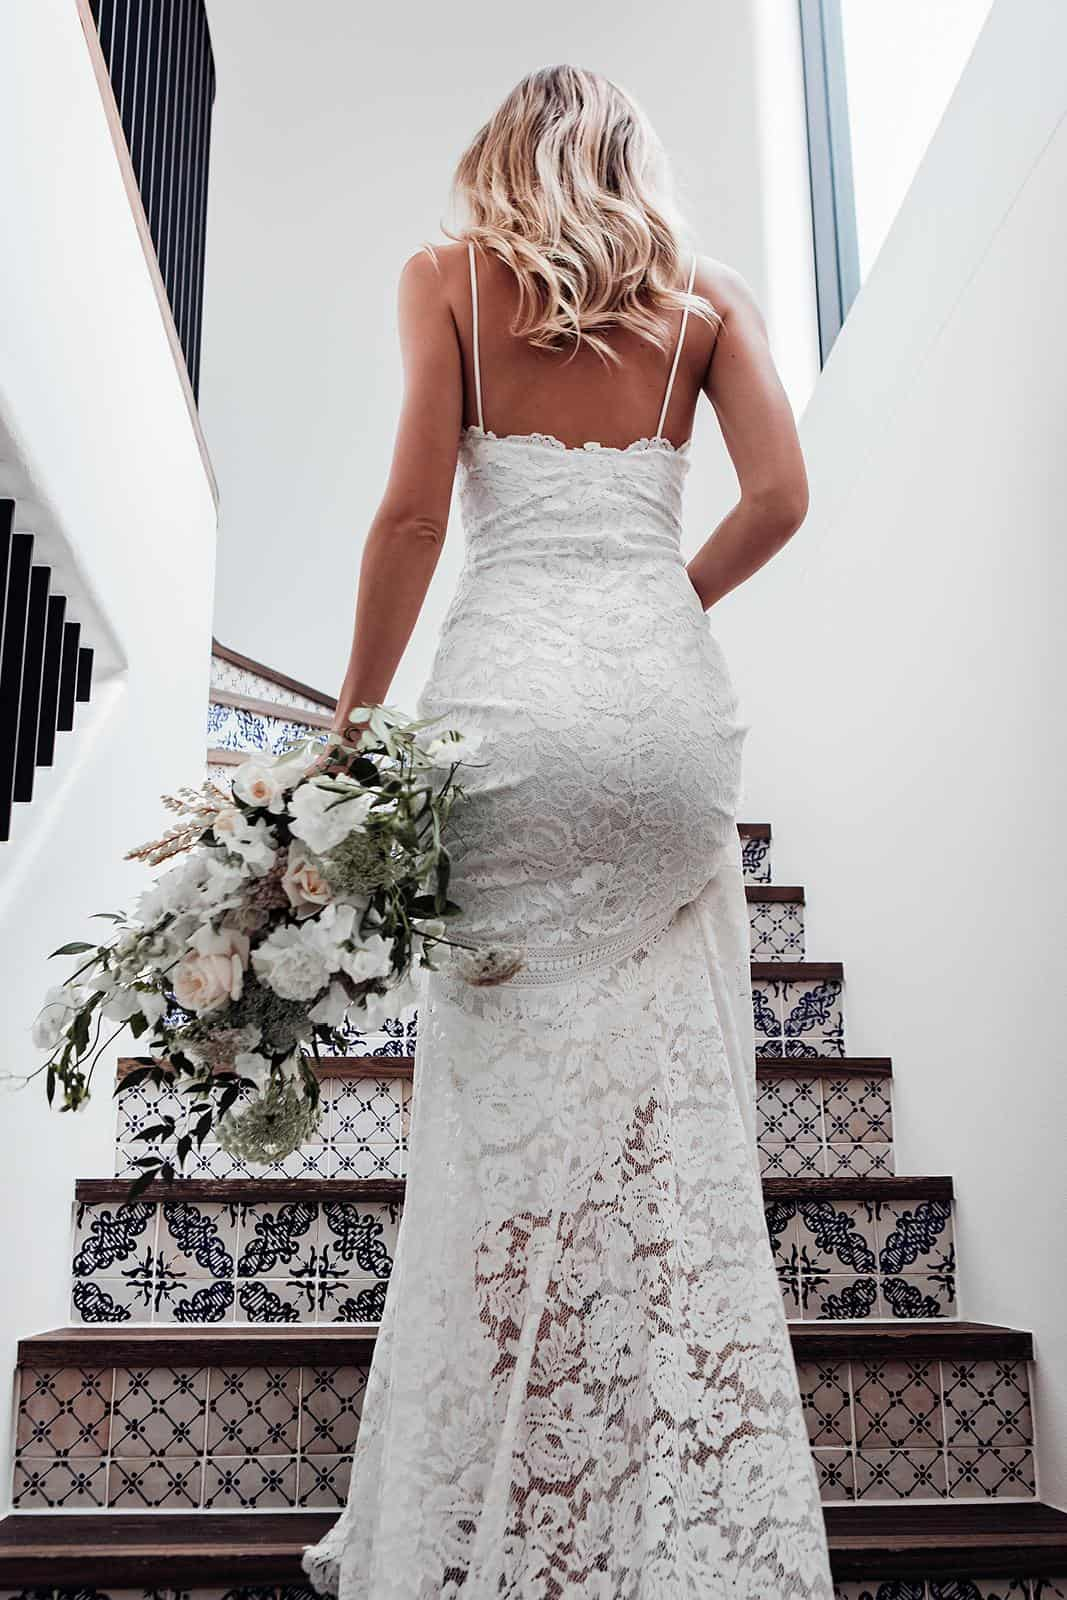 Bohemian Wedding Dress Inspiration French Lace Detail Dress Handmade by Grace Loves Lace Hart